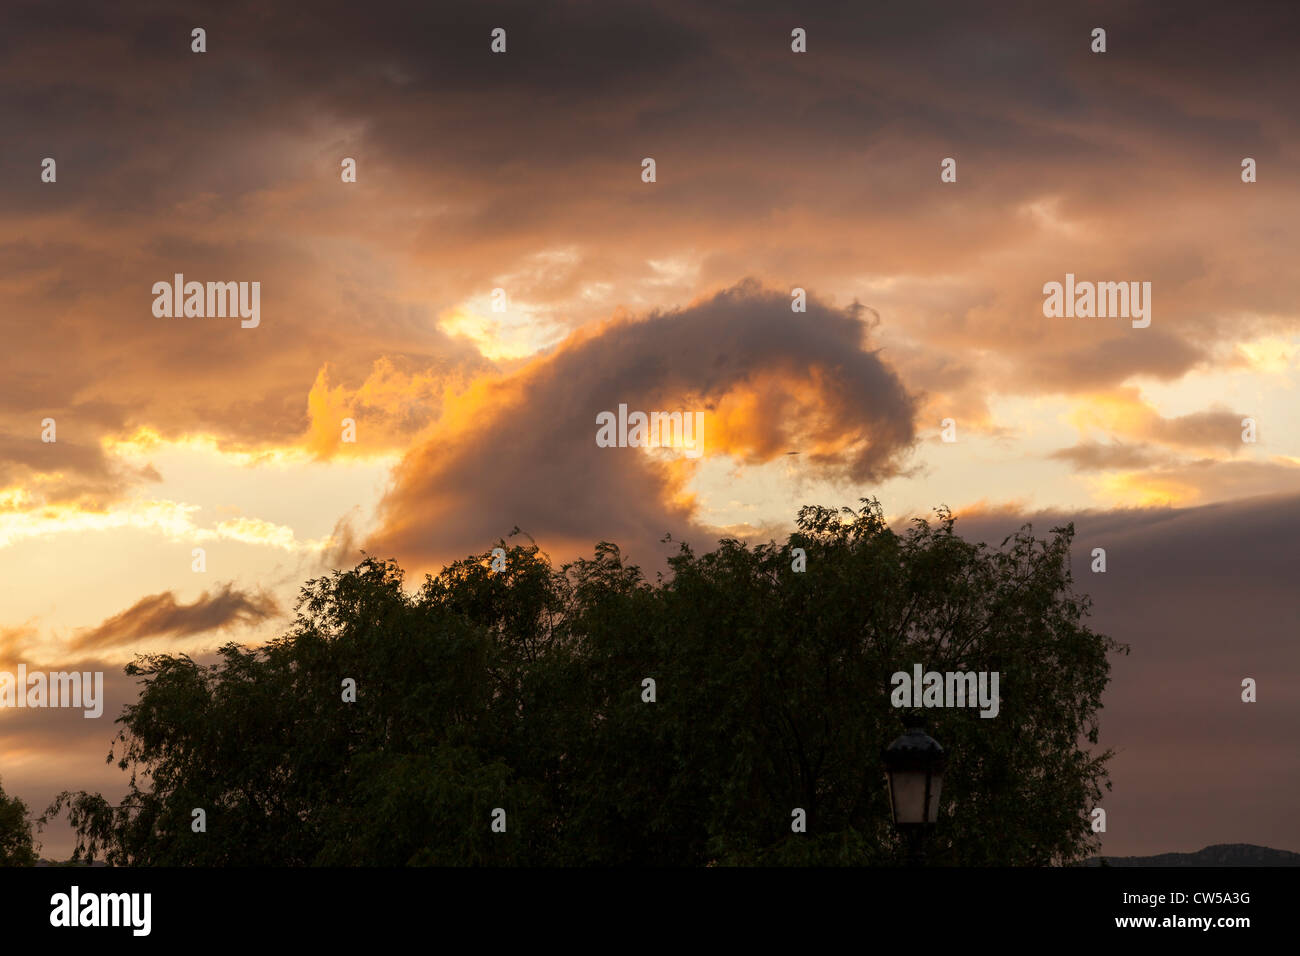 Unusual wave like cloud formation with beautiful colours in setting sun, La Rioja, Spain, Europe. - Stock Image